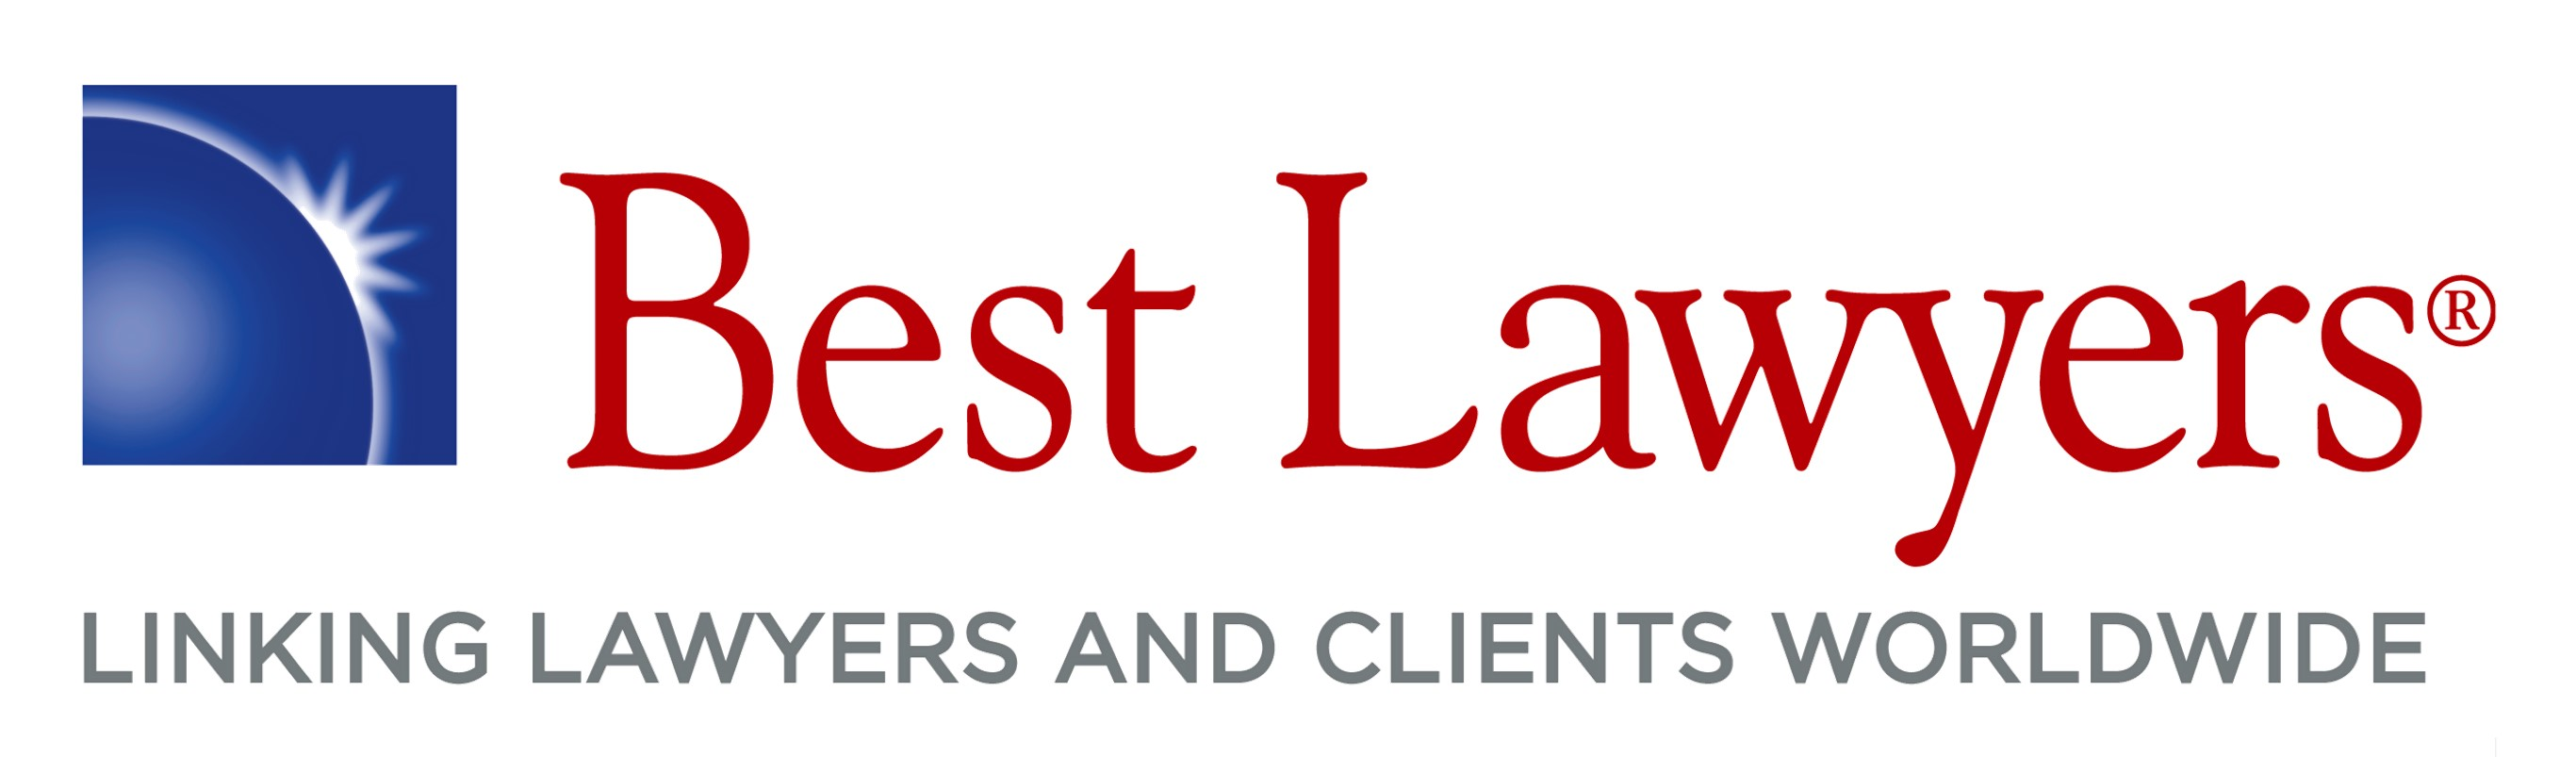 Best Lawyers logo 2